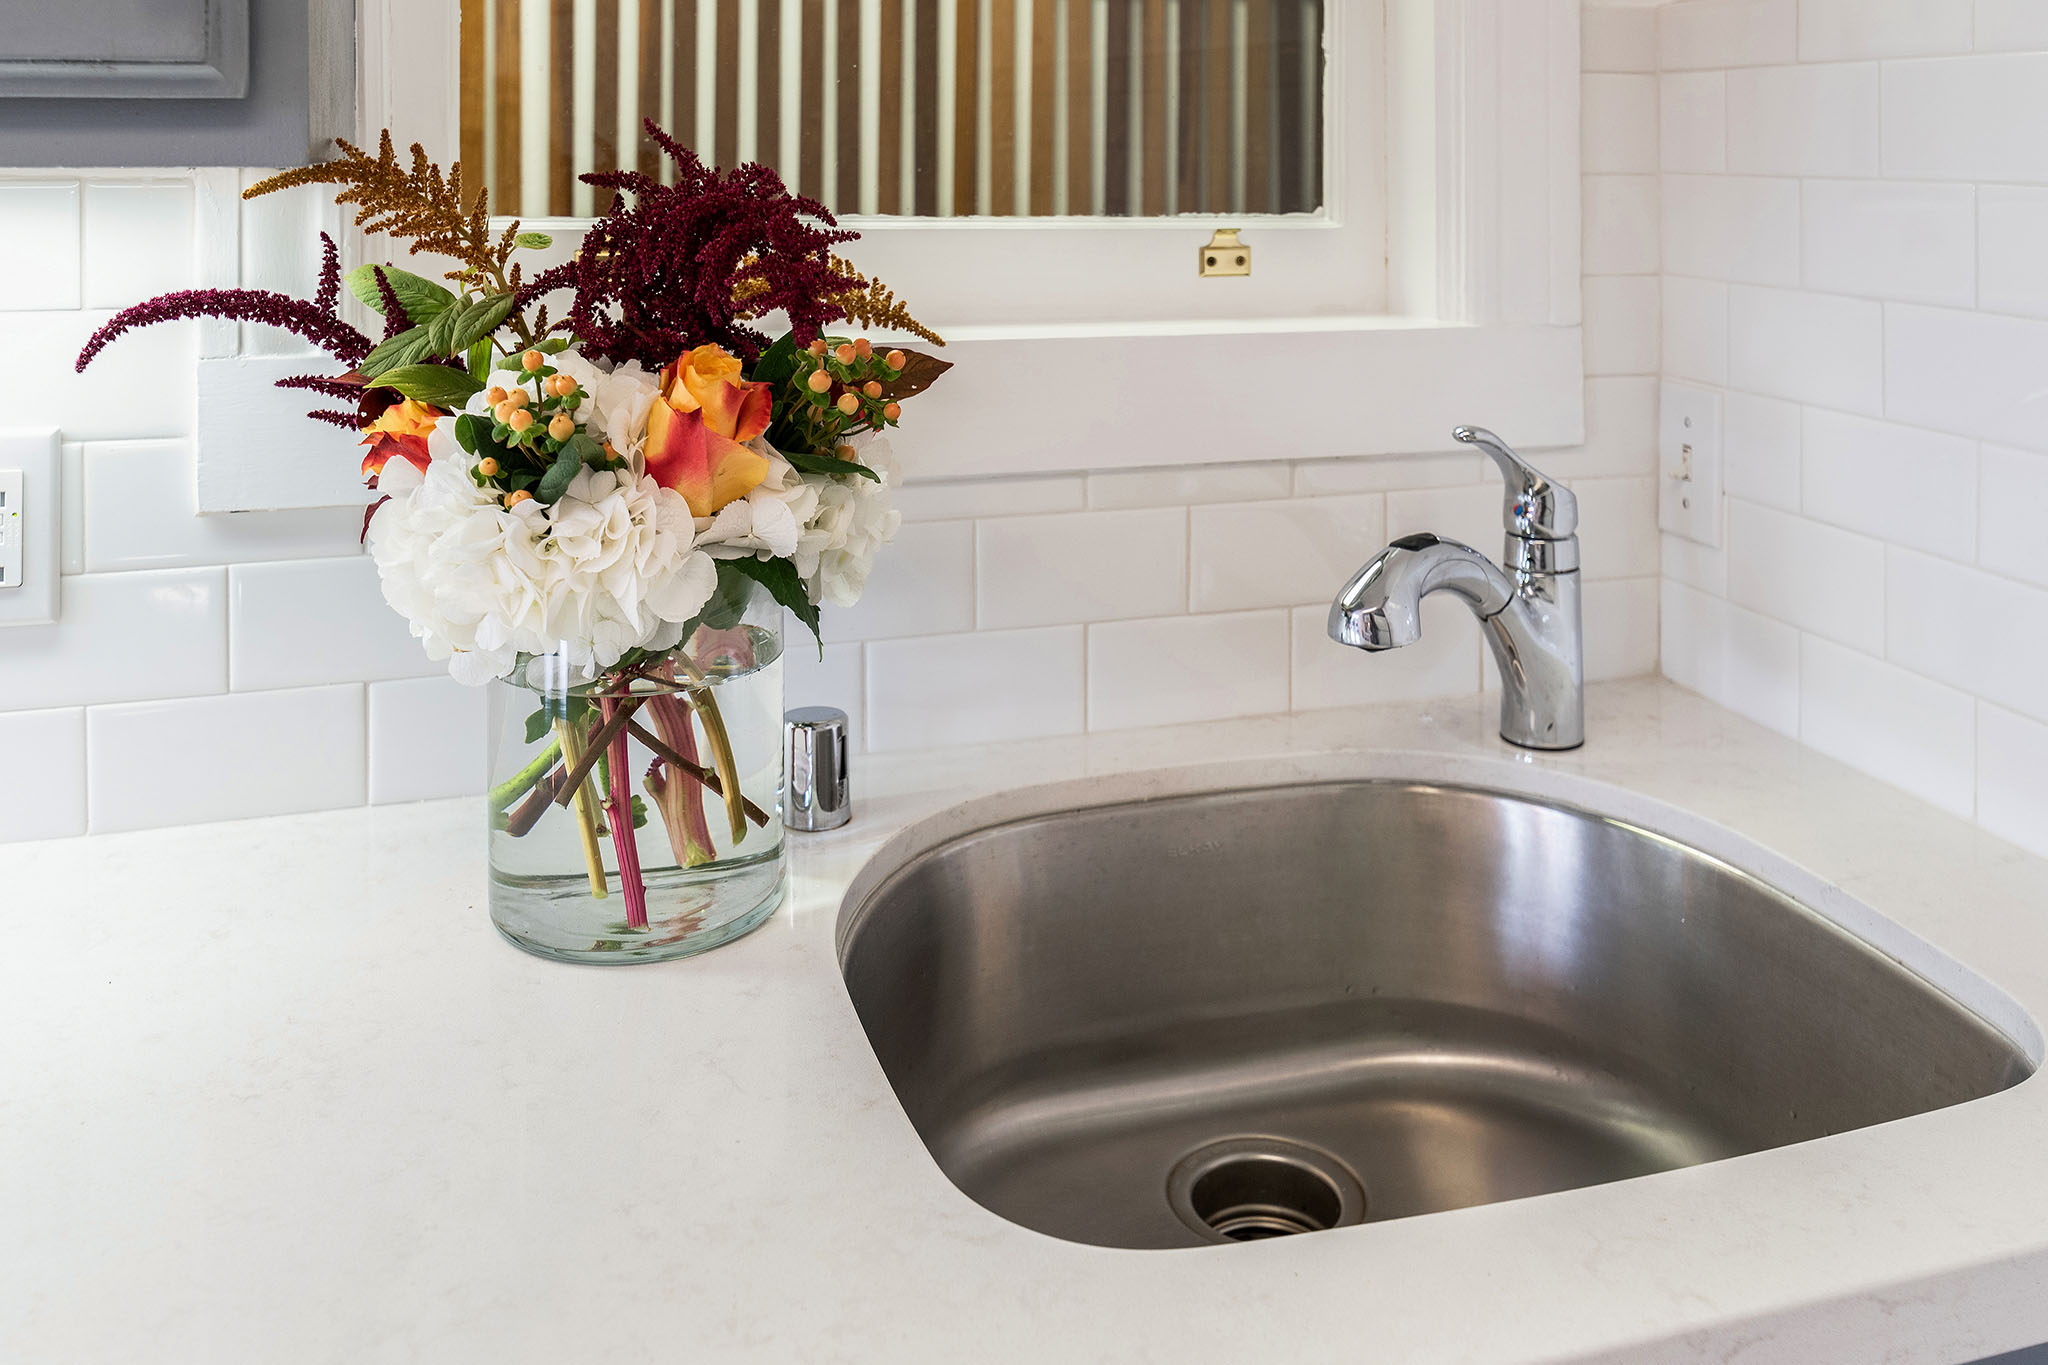 Kitchen sink with flower detail - SF Real Estate